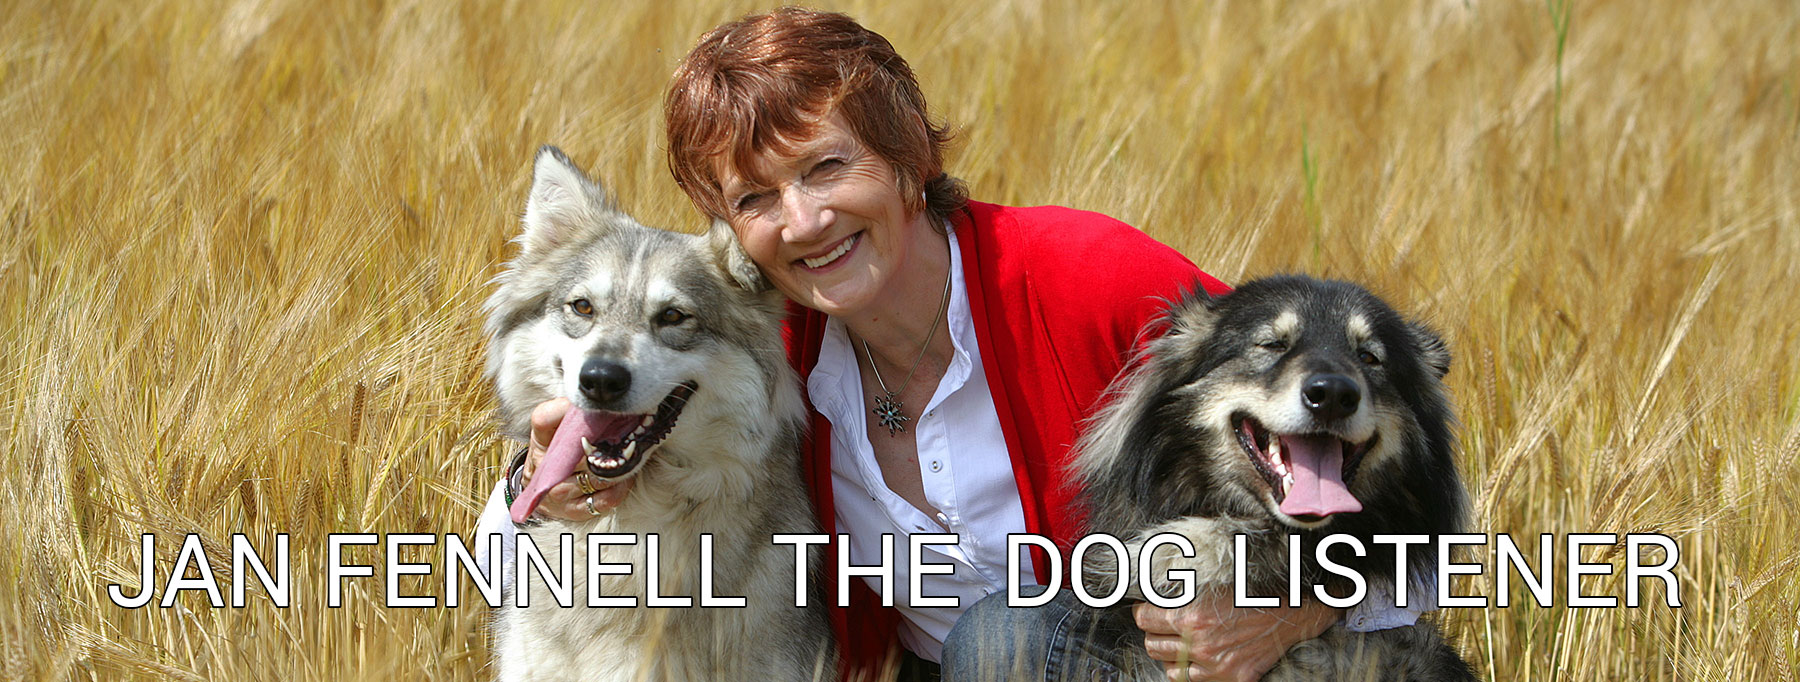 Welcome   Jan Fennell the Dog Listener